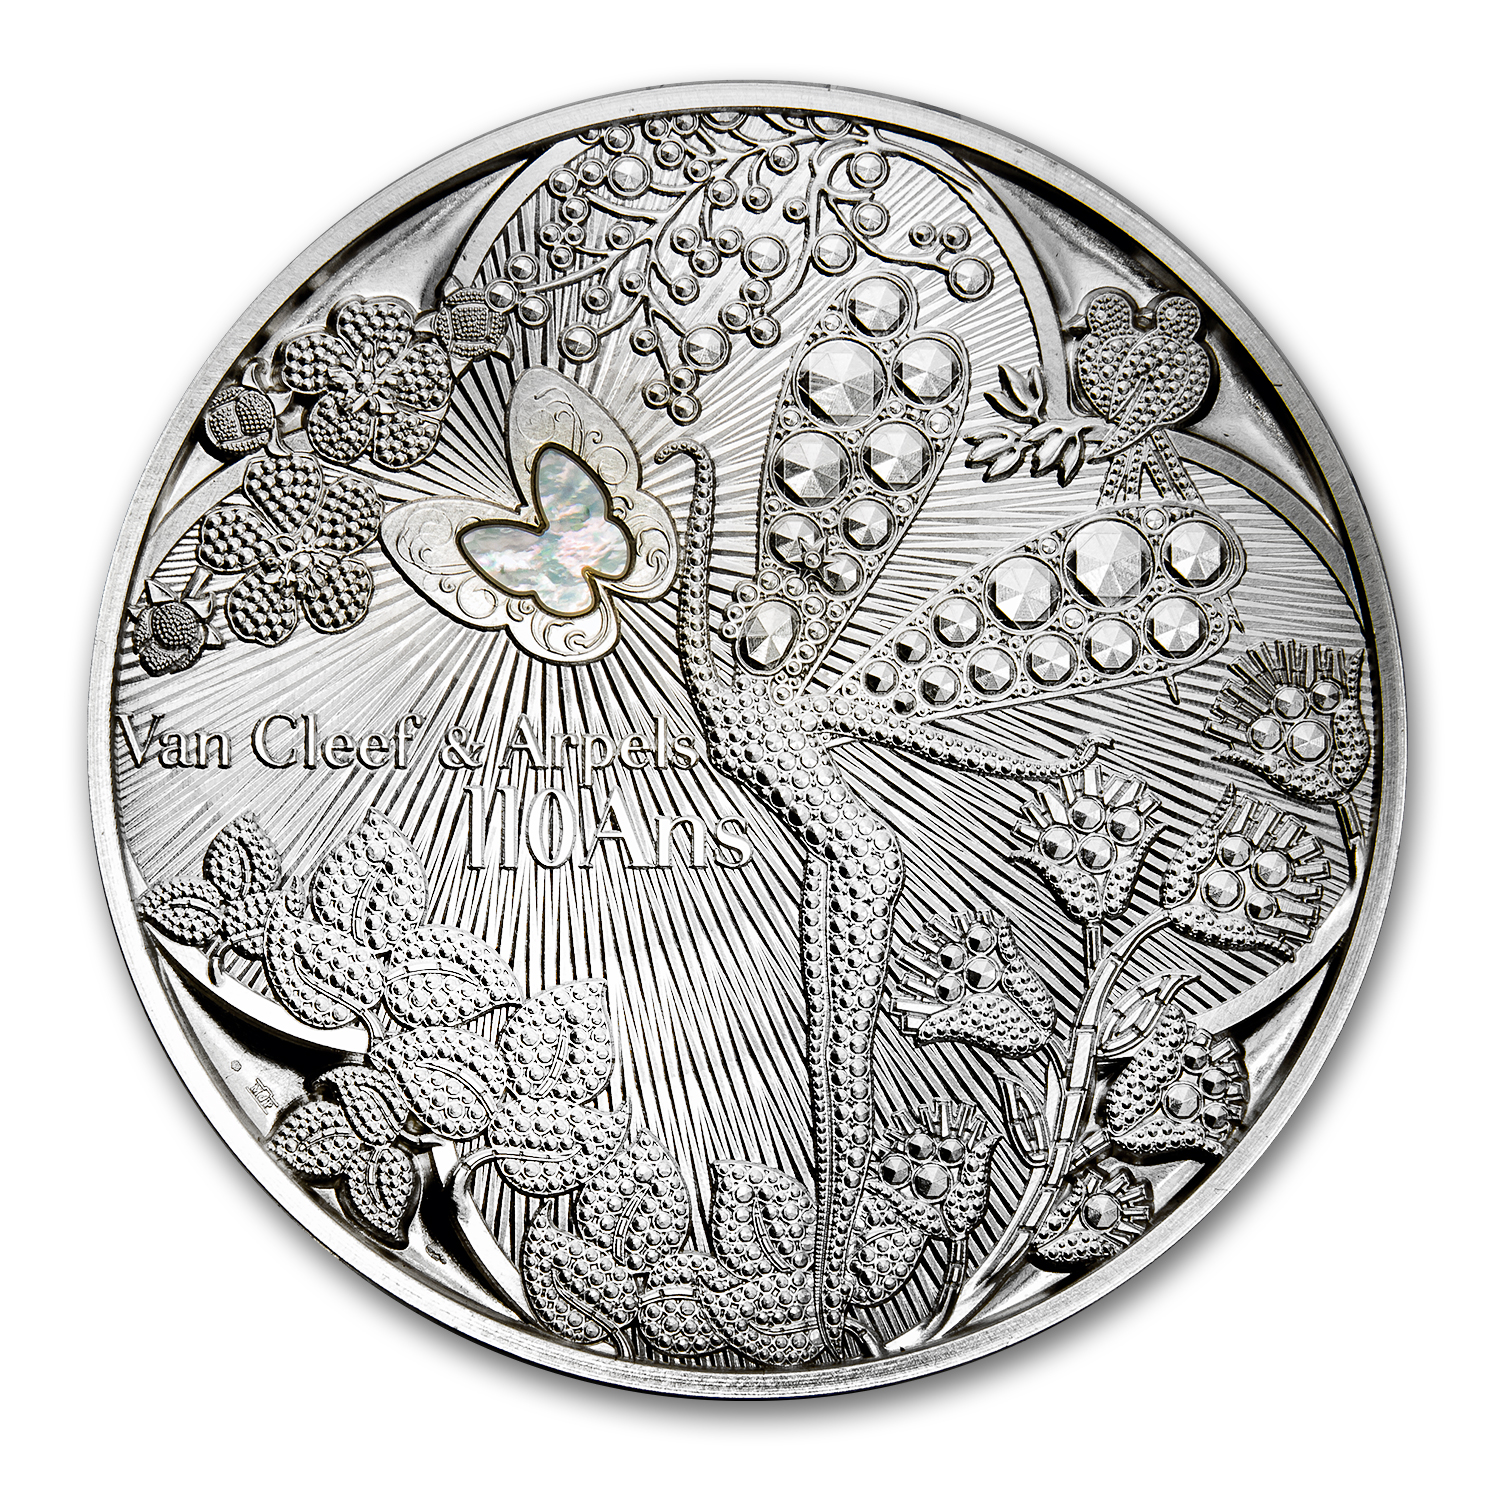 2016 Silver French Excellence Series Medal (Van Cleef & Arpels)